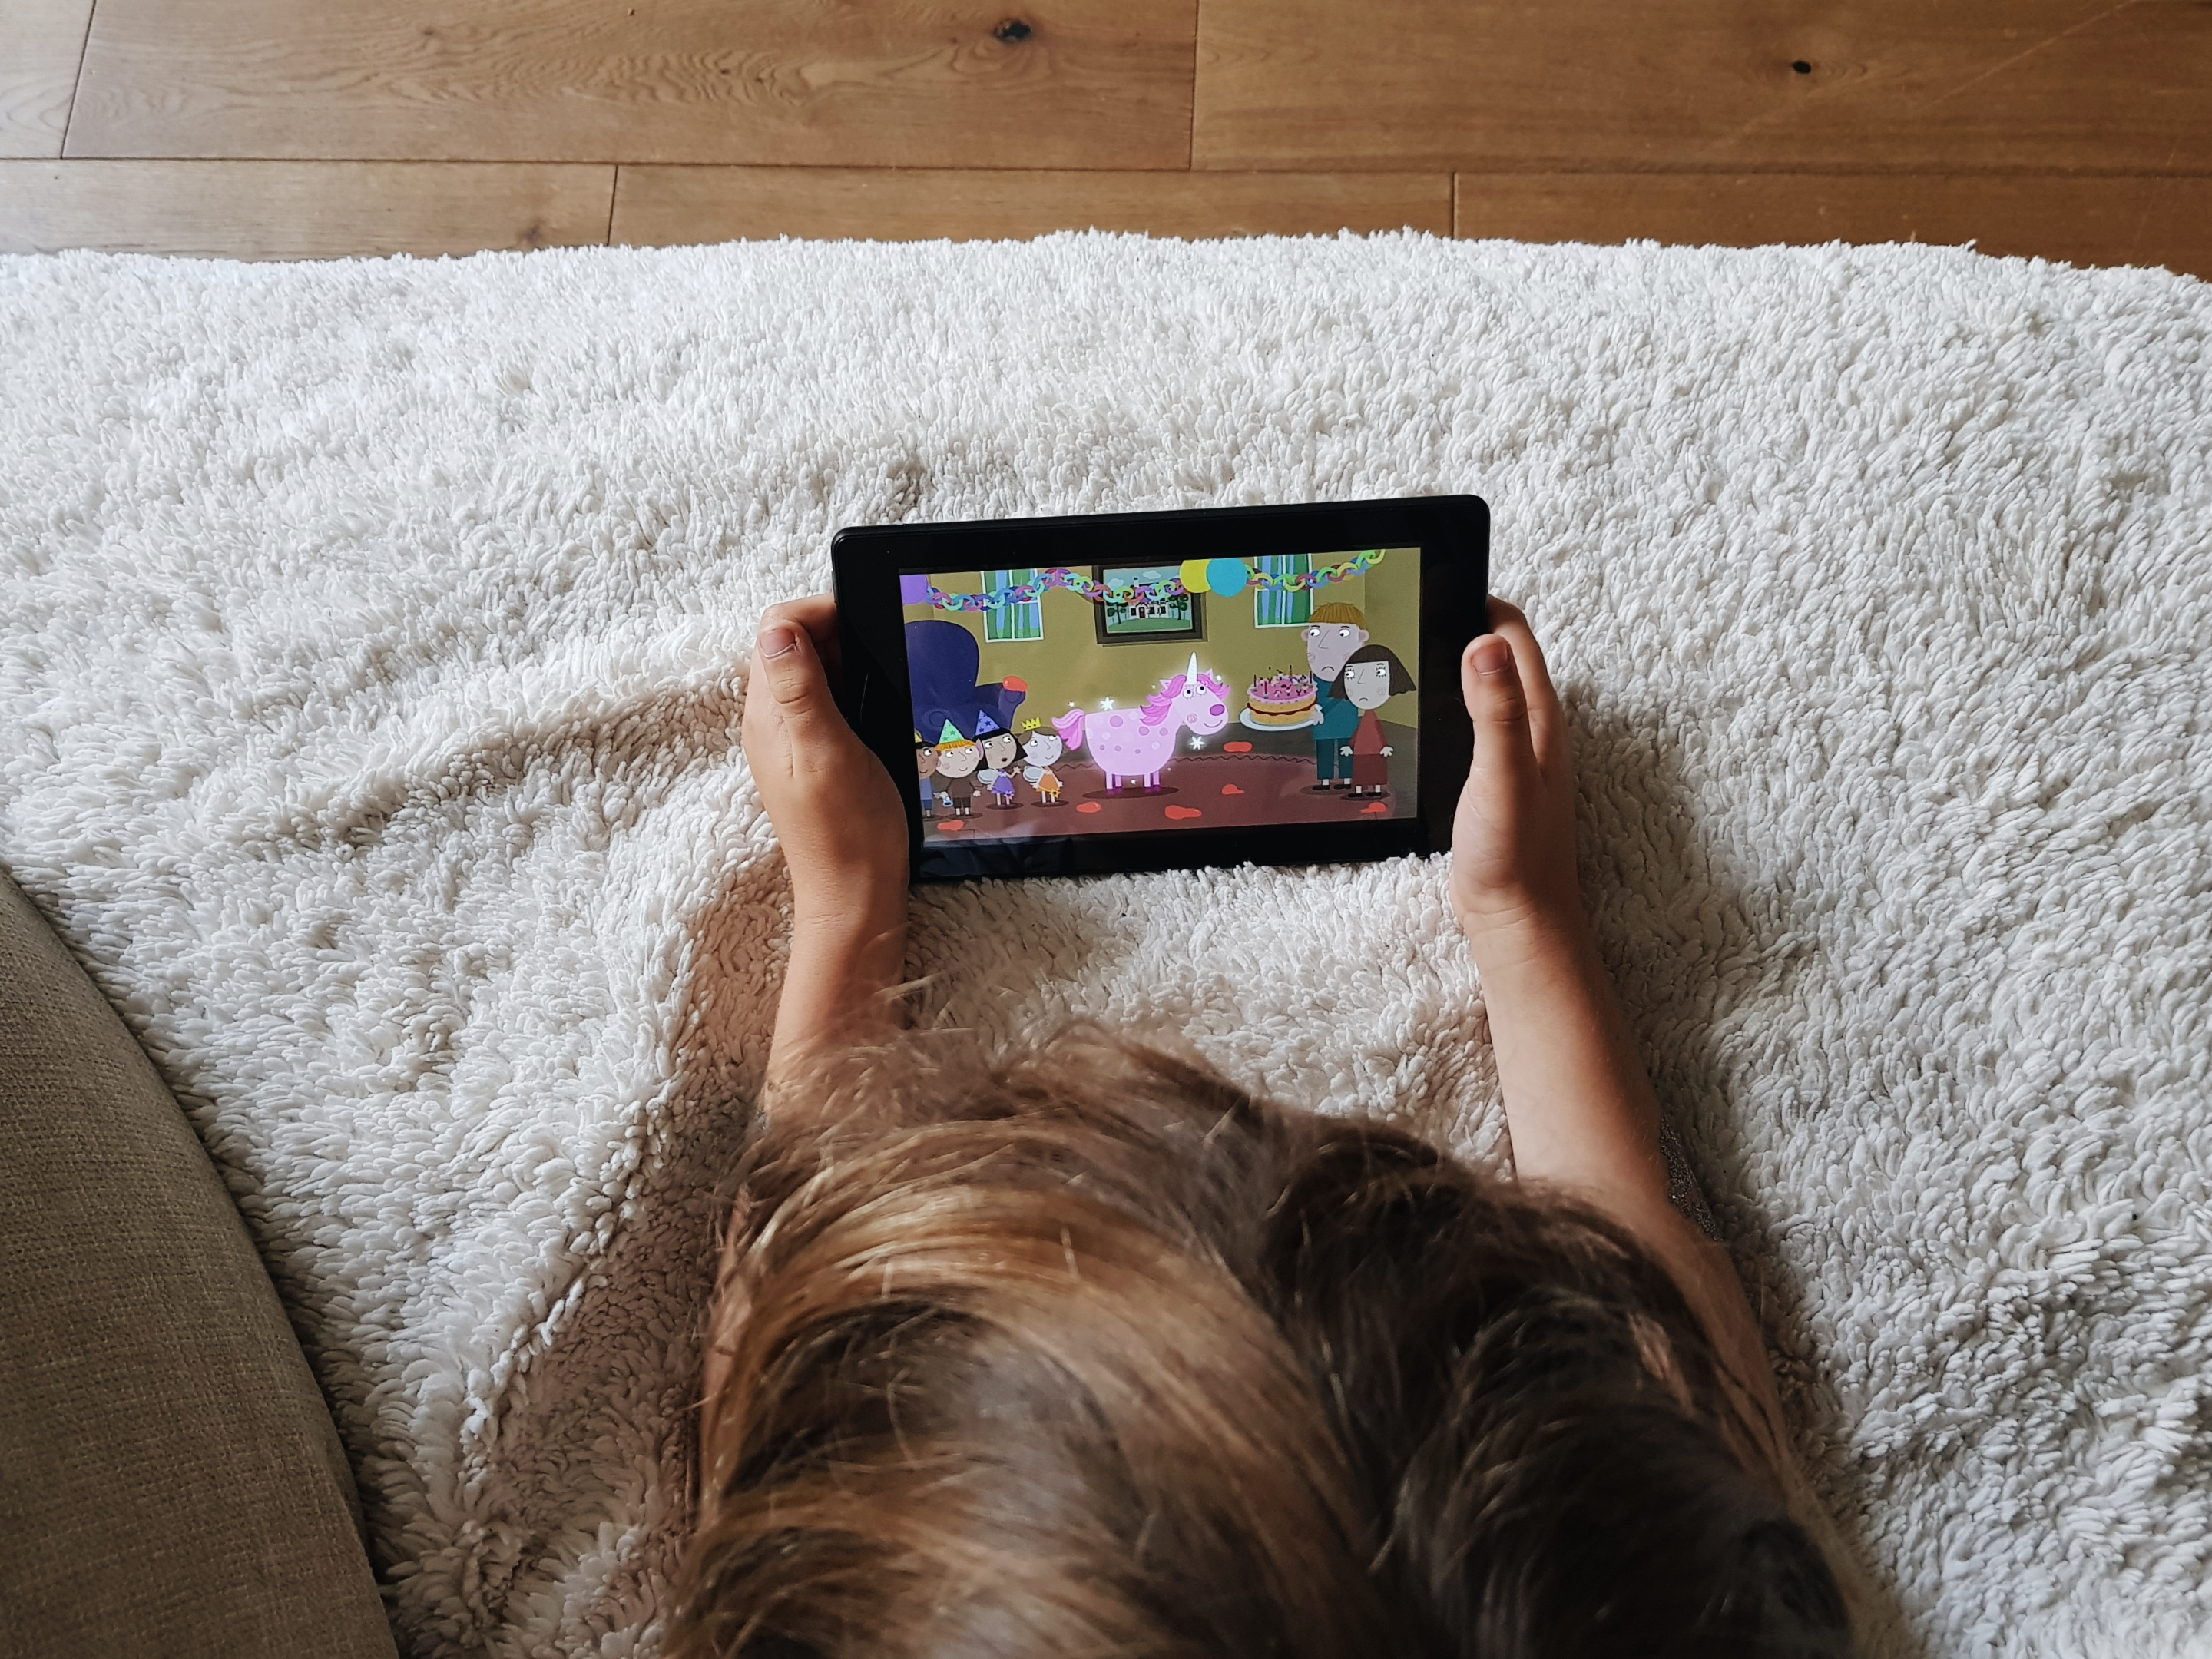 Amazon Fire 7 Tablet Review | Family Travel Tablet